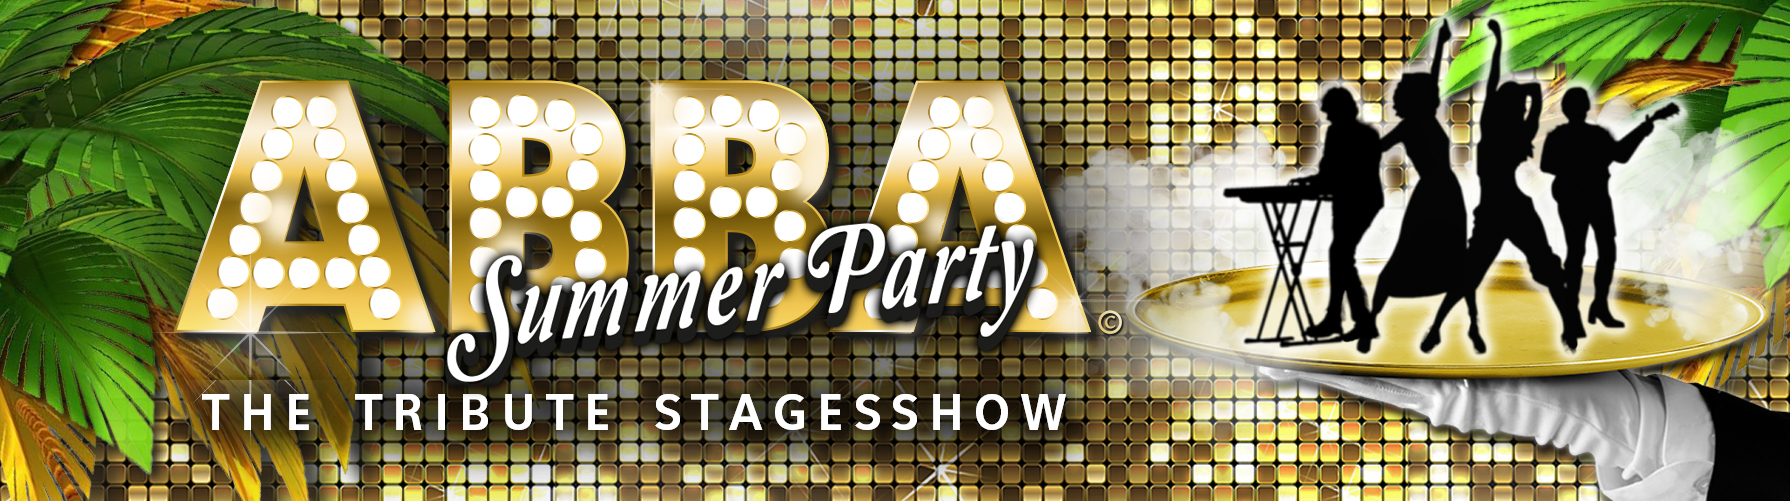 ABBA DELUXE StageShow Summer Party